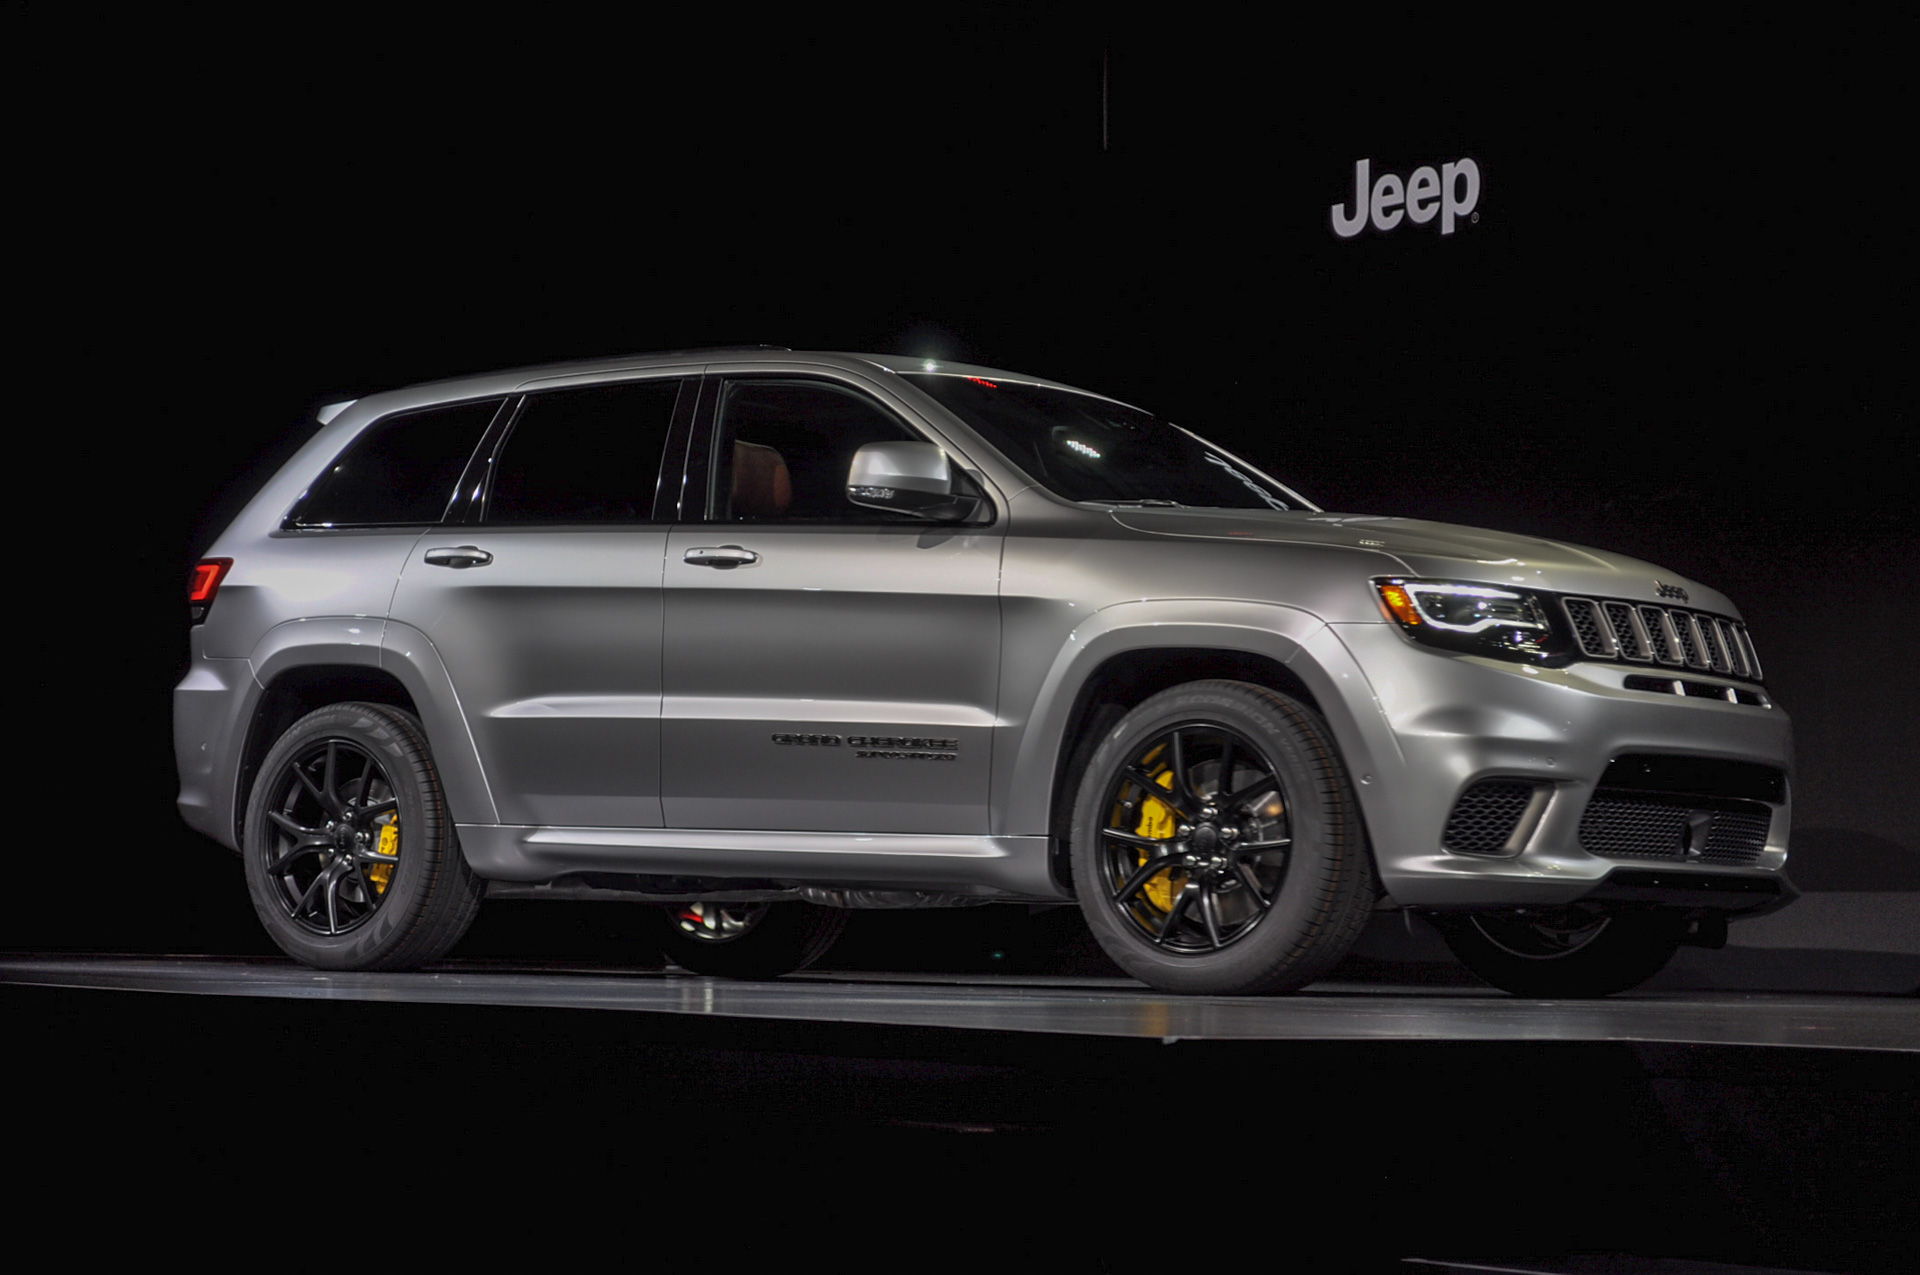 Hellcat-powered 2018 Jeep Grand Cherokee Trackhawk arrives ...